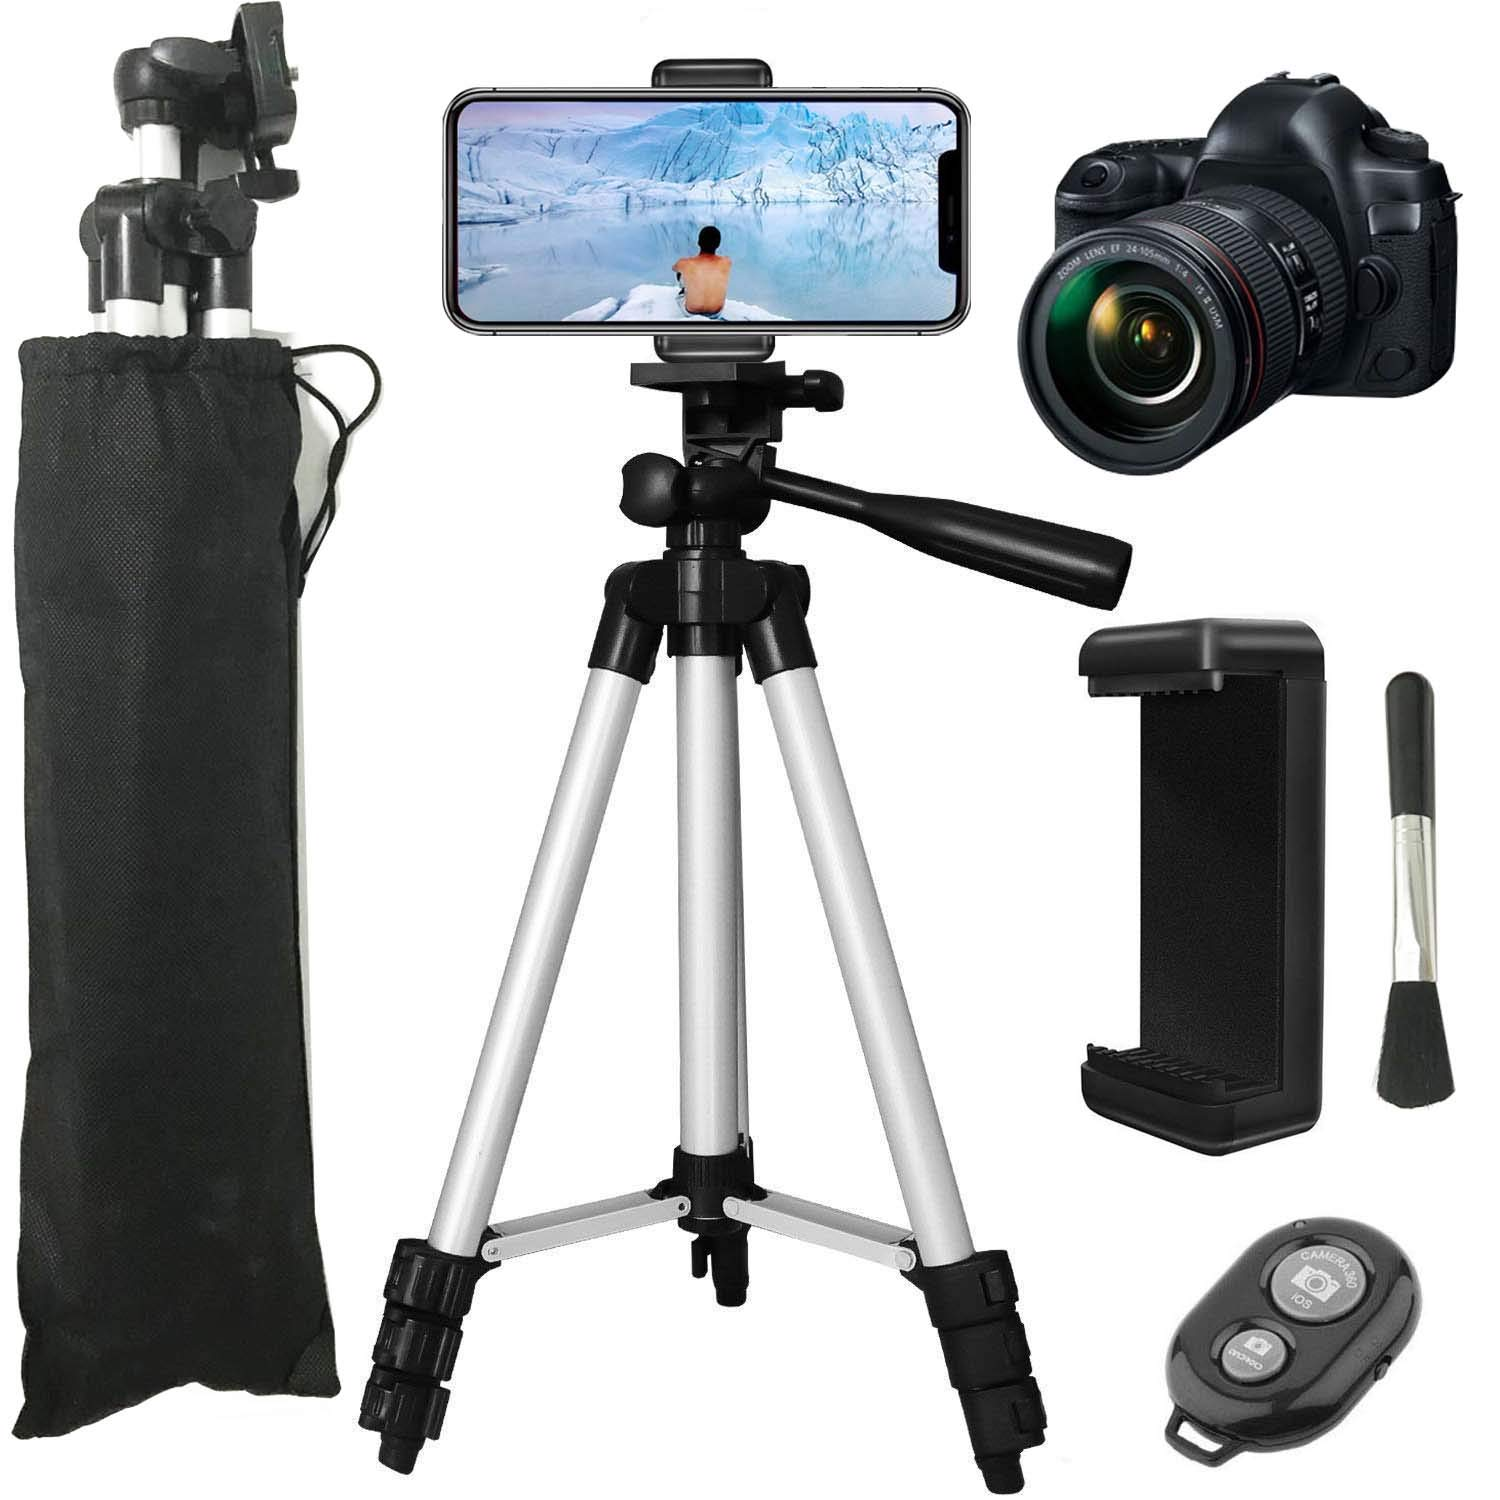 LONK Tripod 42' Phone Camera Tripod Lightweight Aluminum with Smartphone Holder, Camera Mount and Remote Control Shutter Compatible for iPhone Xs/X 8 7 6S Plus for Samsung Galaxy S8 S8 Plus S7 LG and Camera LONK TECH